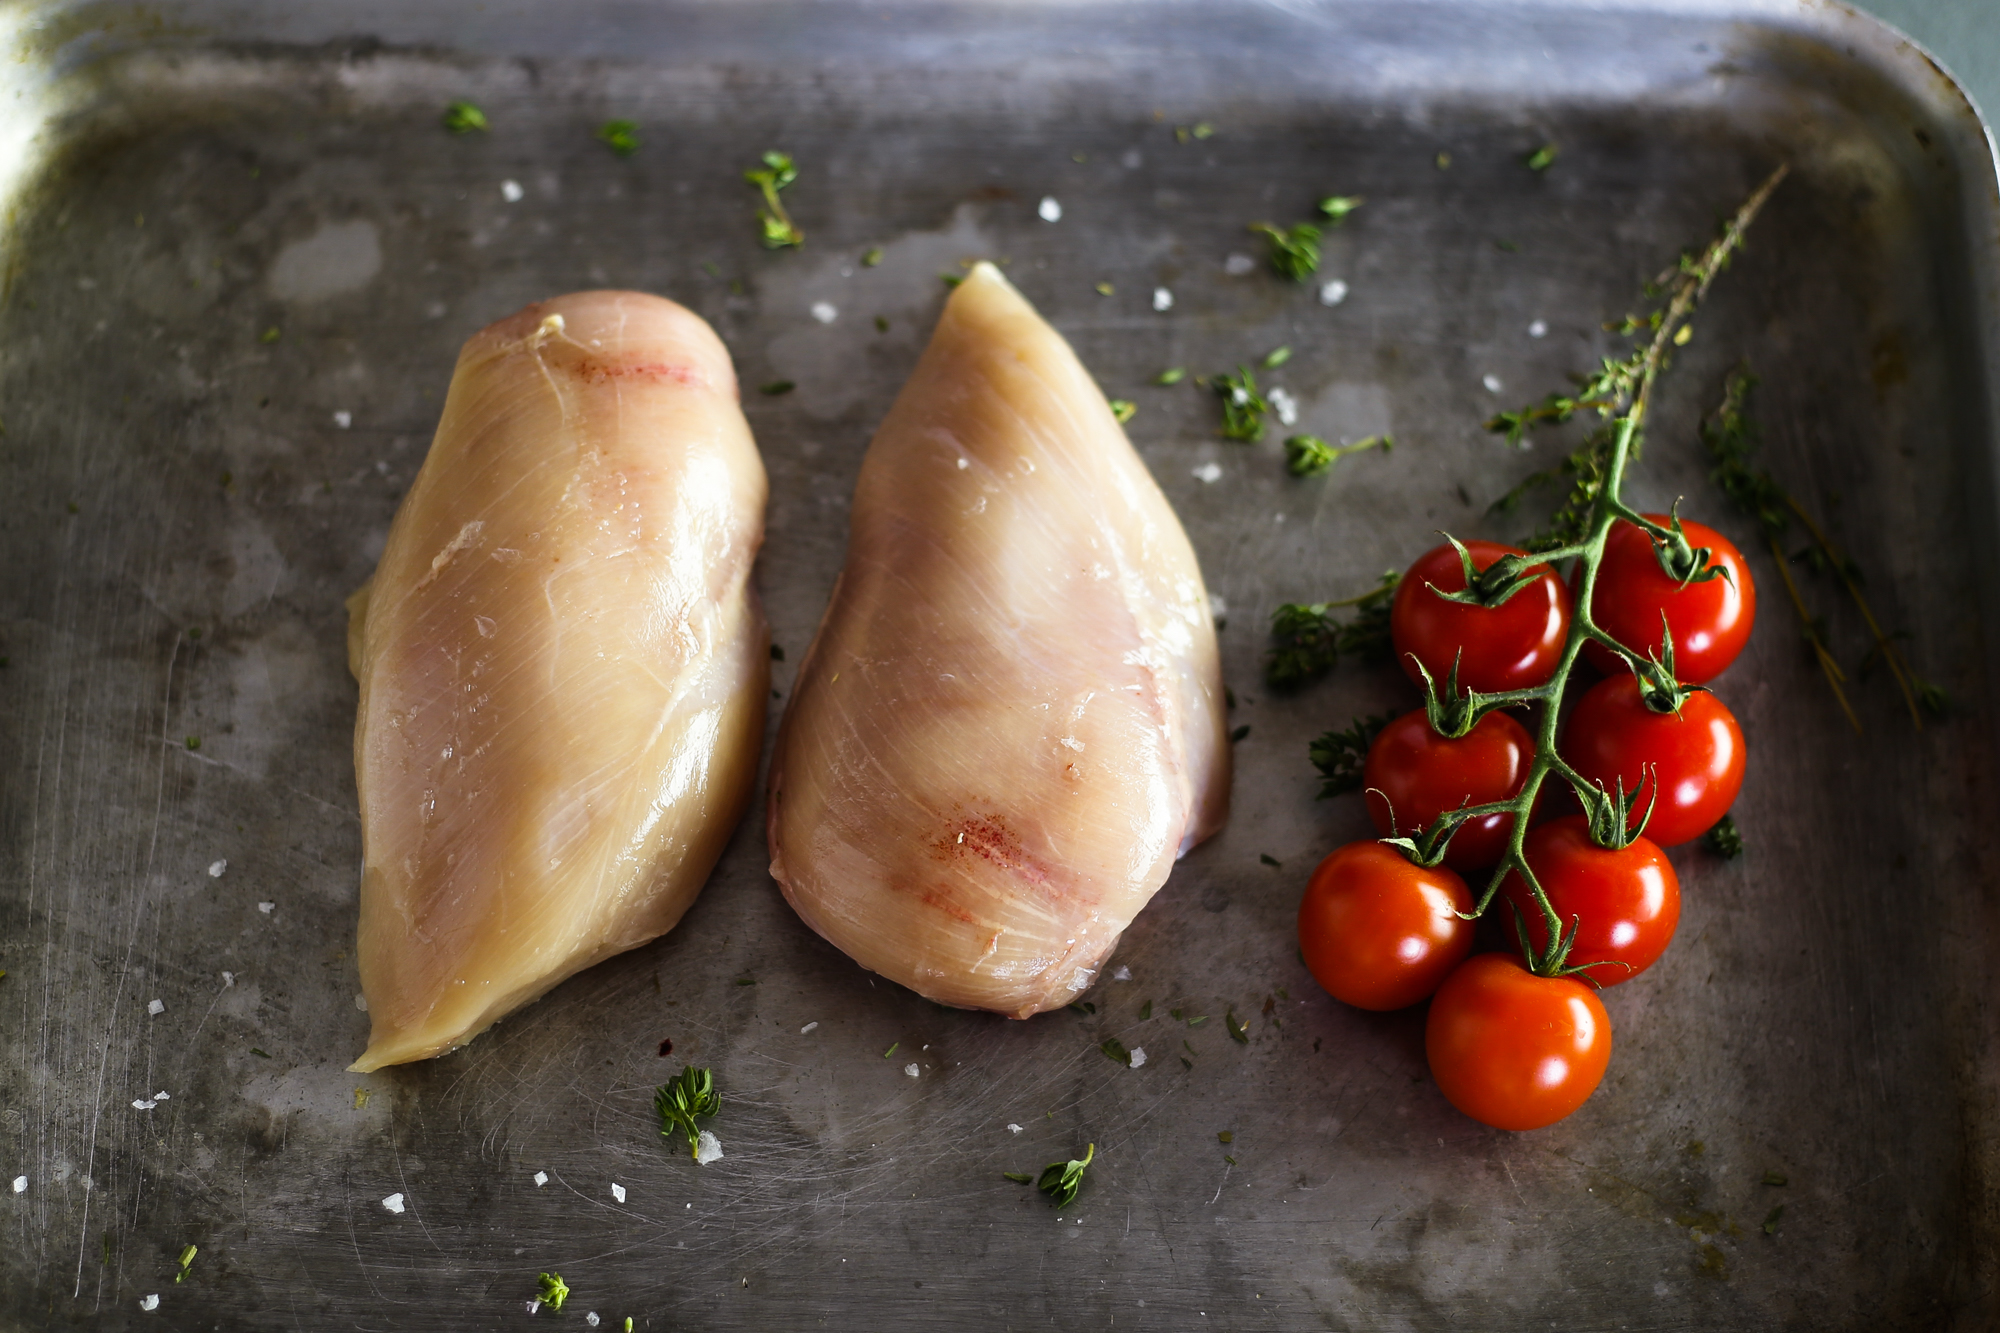 Free range chicken breast fillets x 2